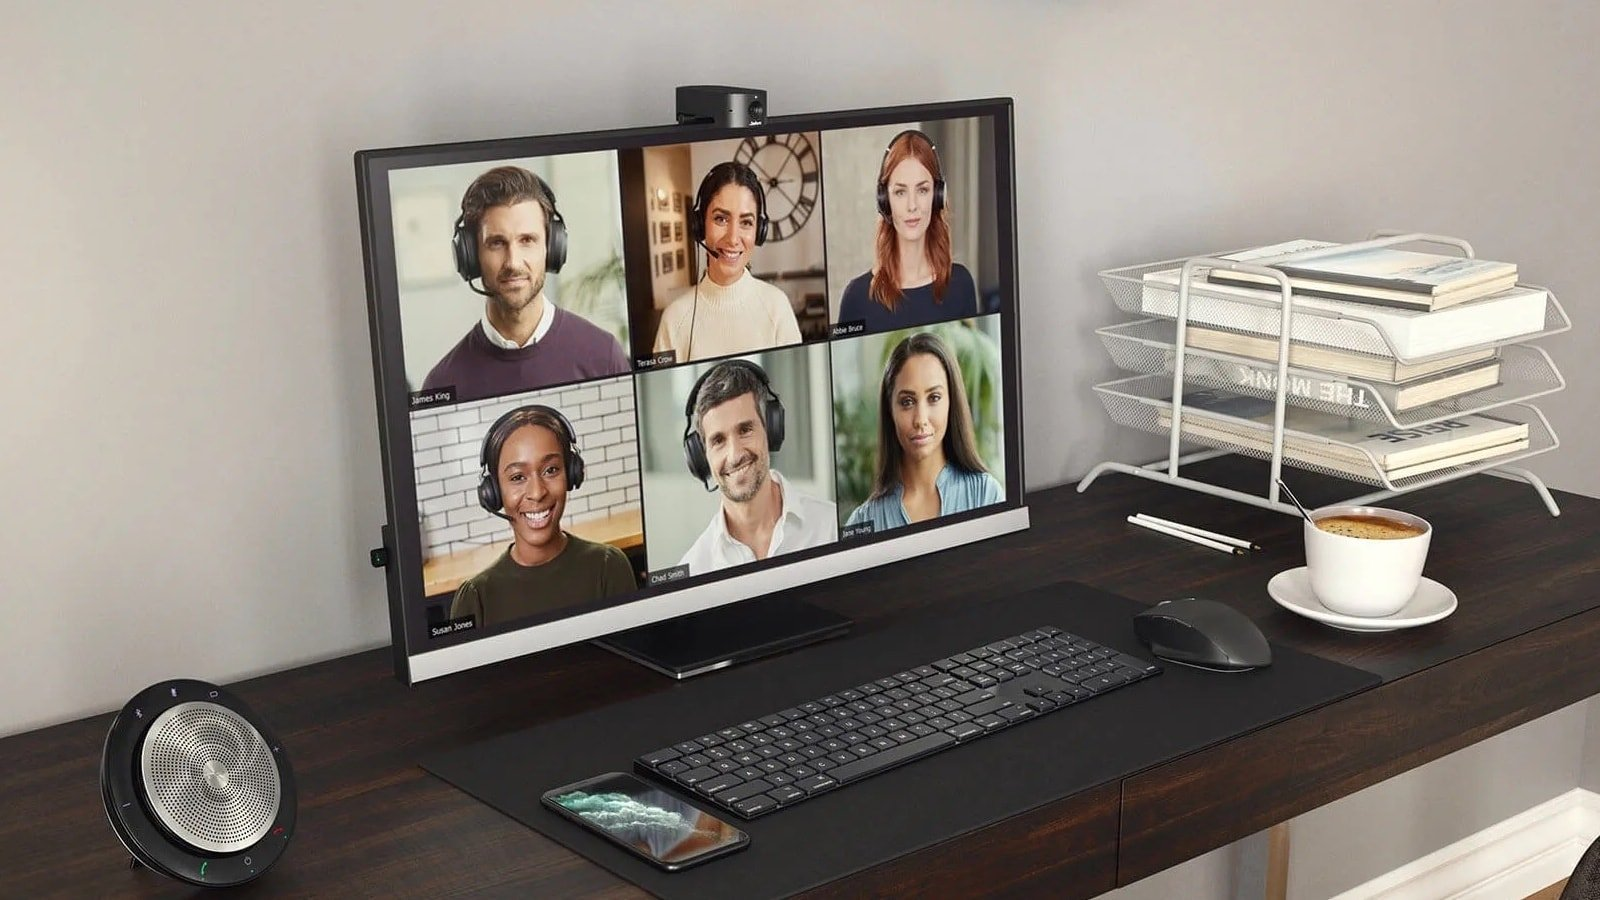 Jabra PanaCast 20 videoconferencing camera delivers 4K Ultra HD video with AI enhancement